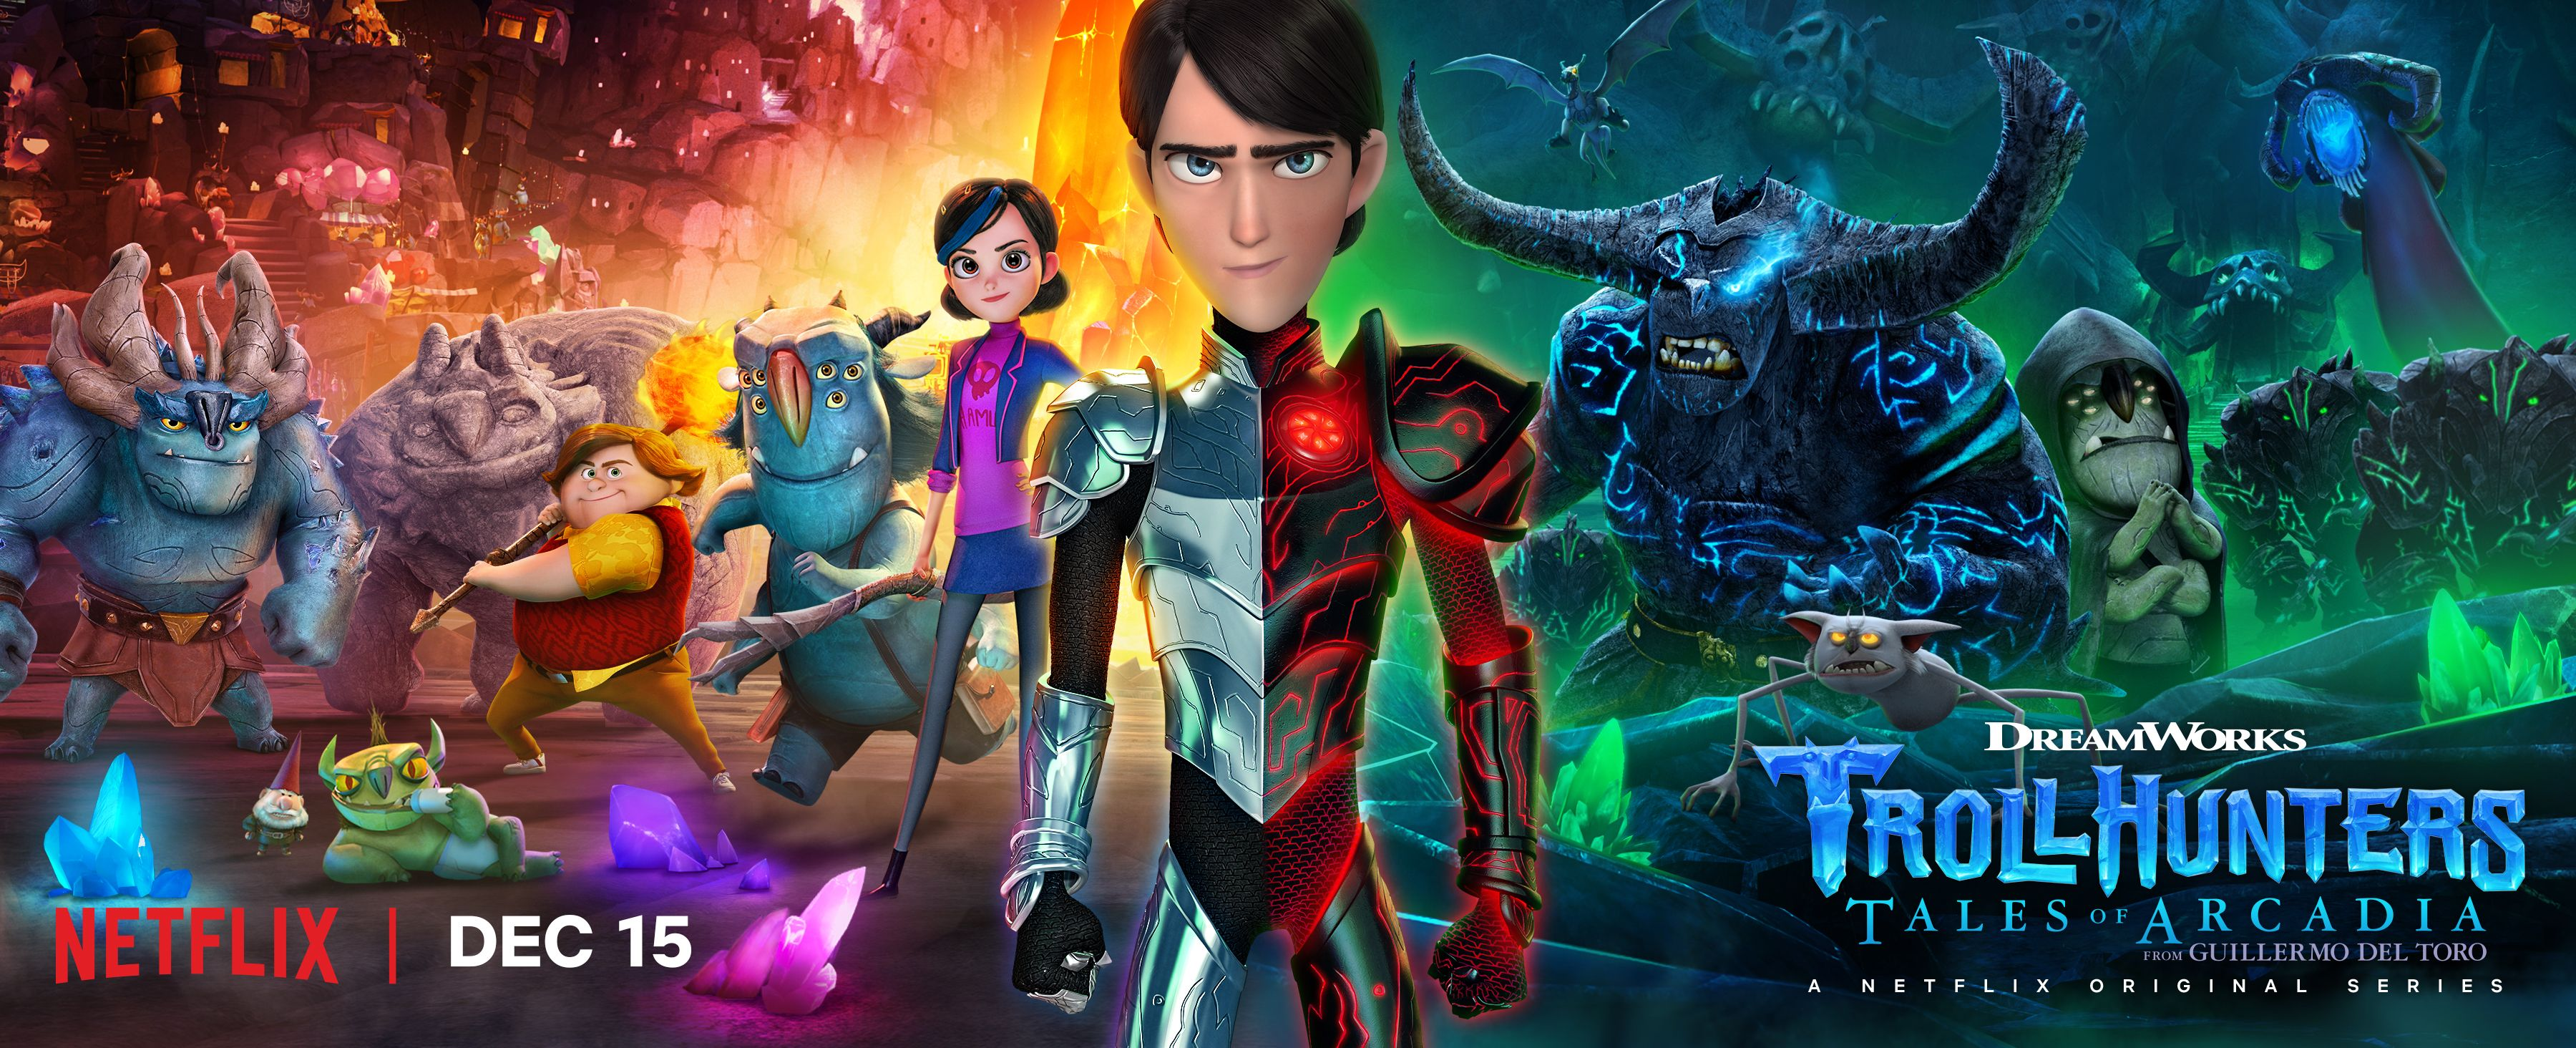 Guillermo del Toro on Trollhunters Season 2 & The Strain Ending